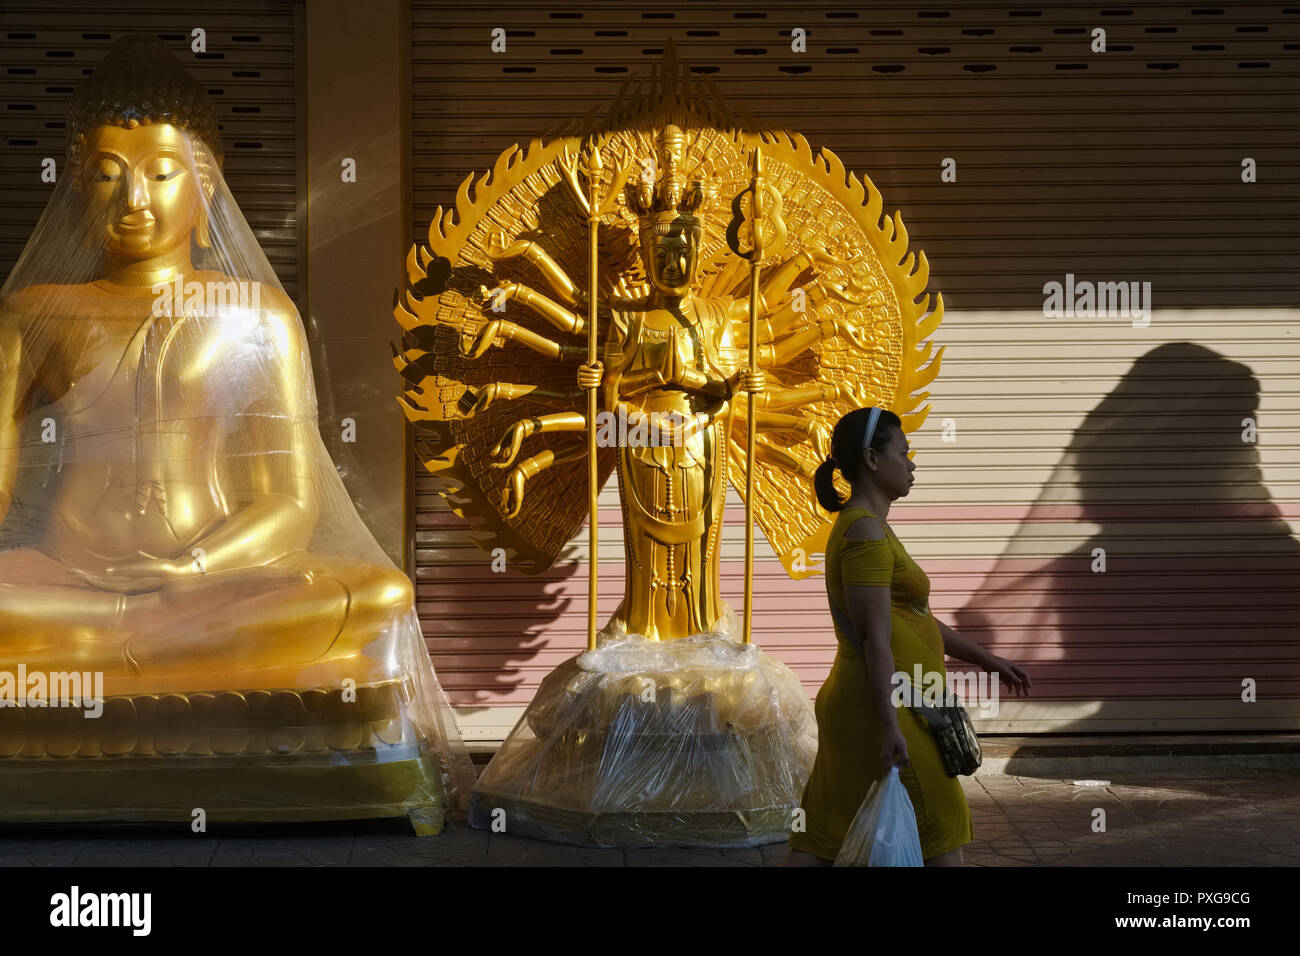 A woman, on an early morning, walking past Buddhist statues placed outside a shop for Buddhist artifacts, Bamrung Muang Rd., Bangkok, Thailand - Stock Image